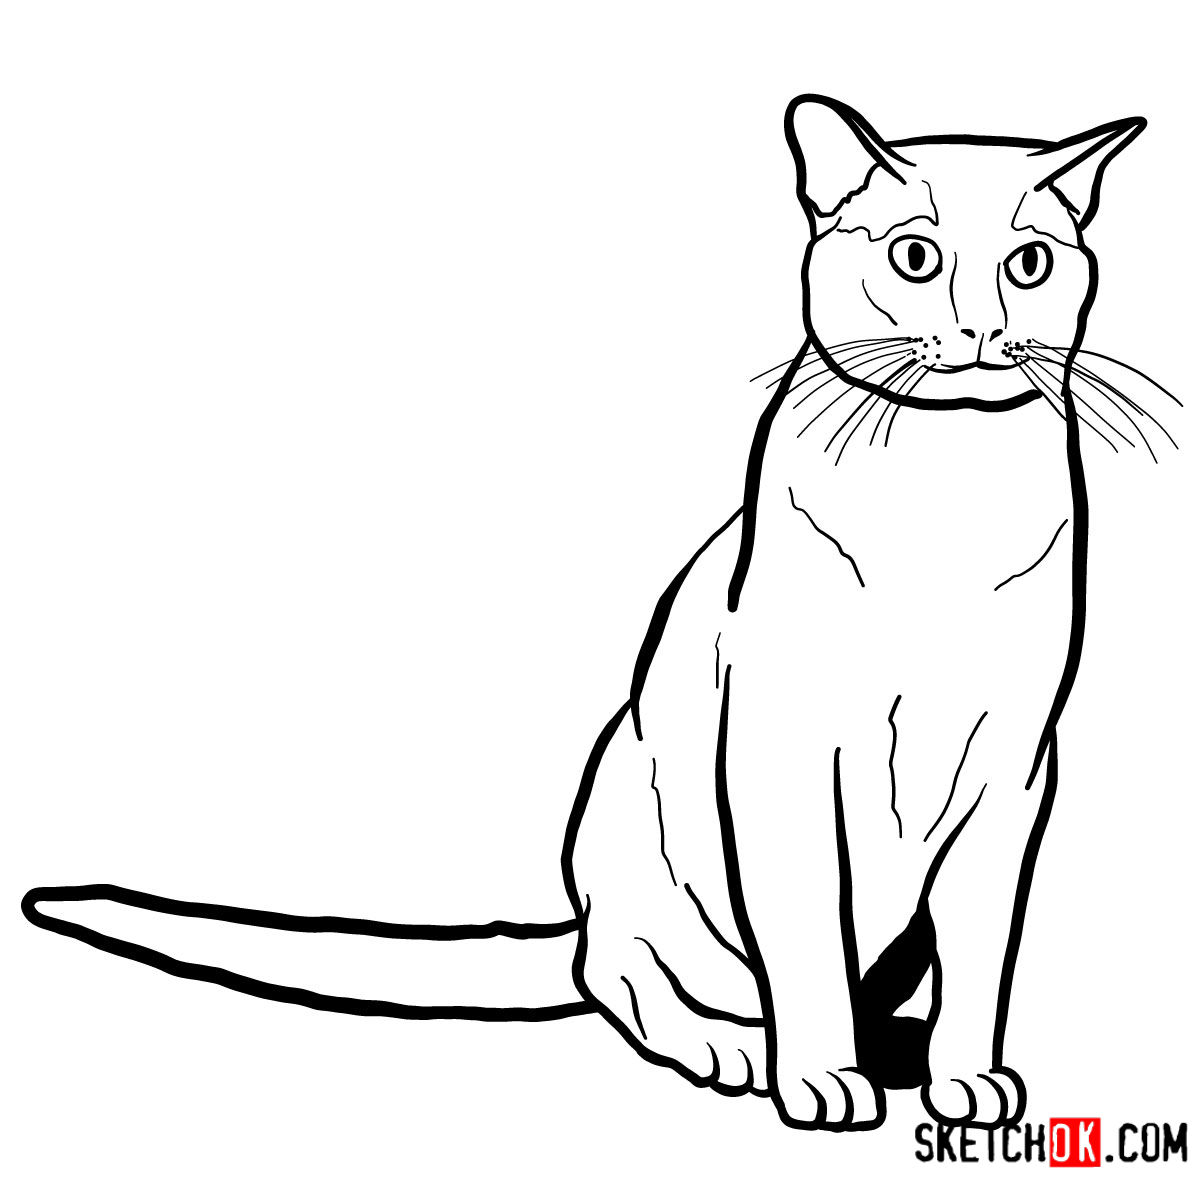 How to draw the Burmese cat - step 11